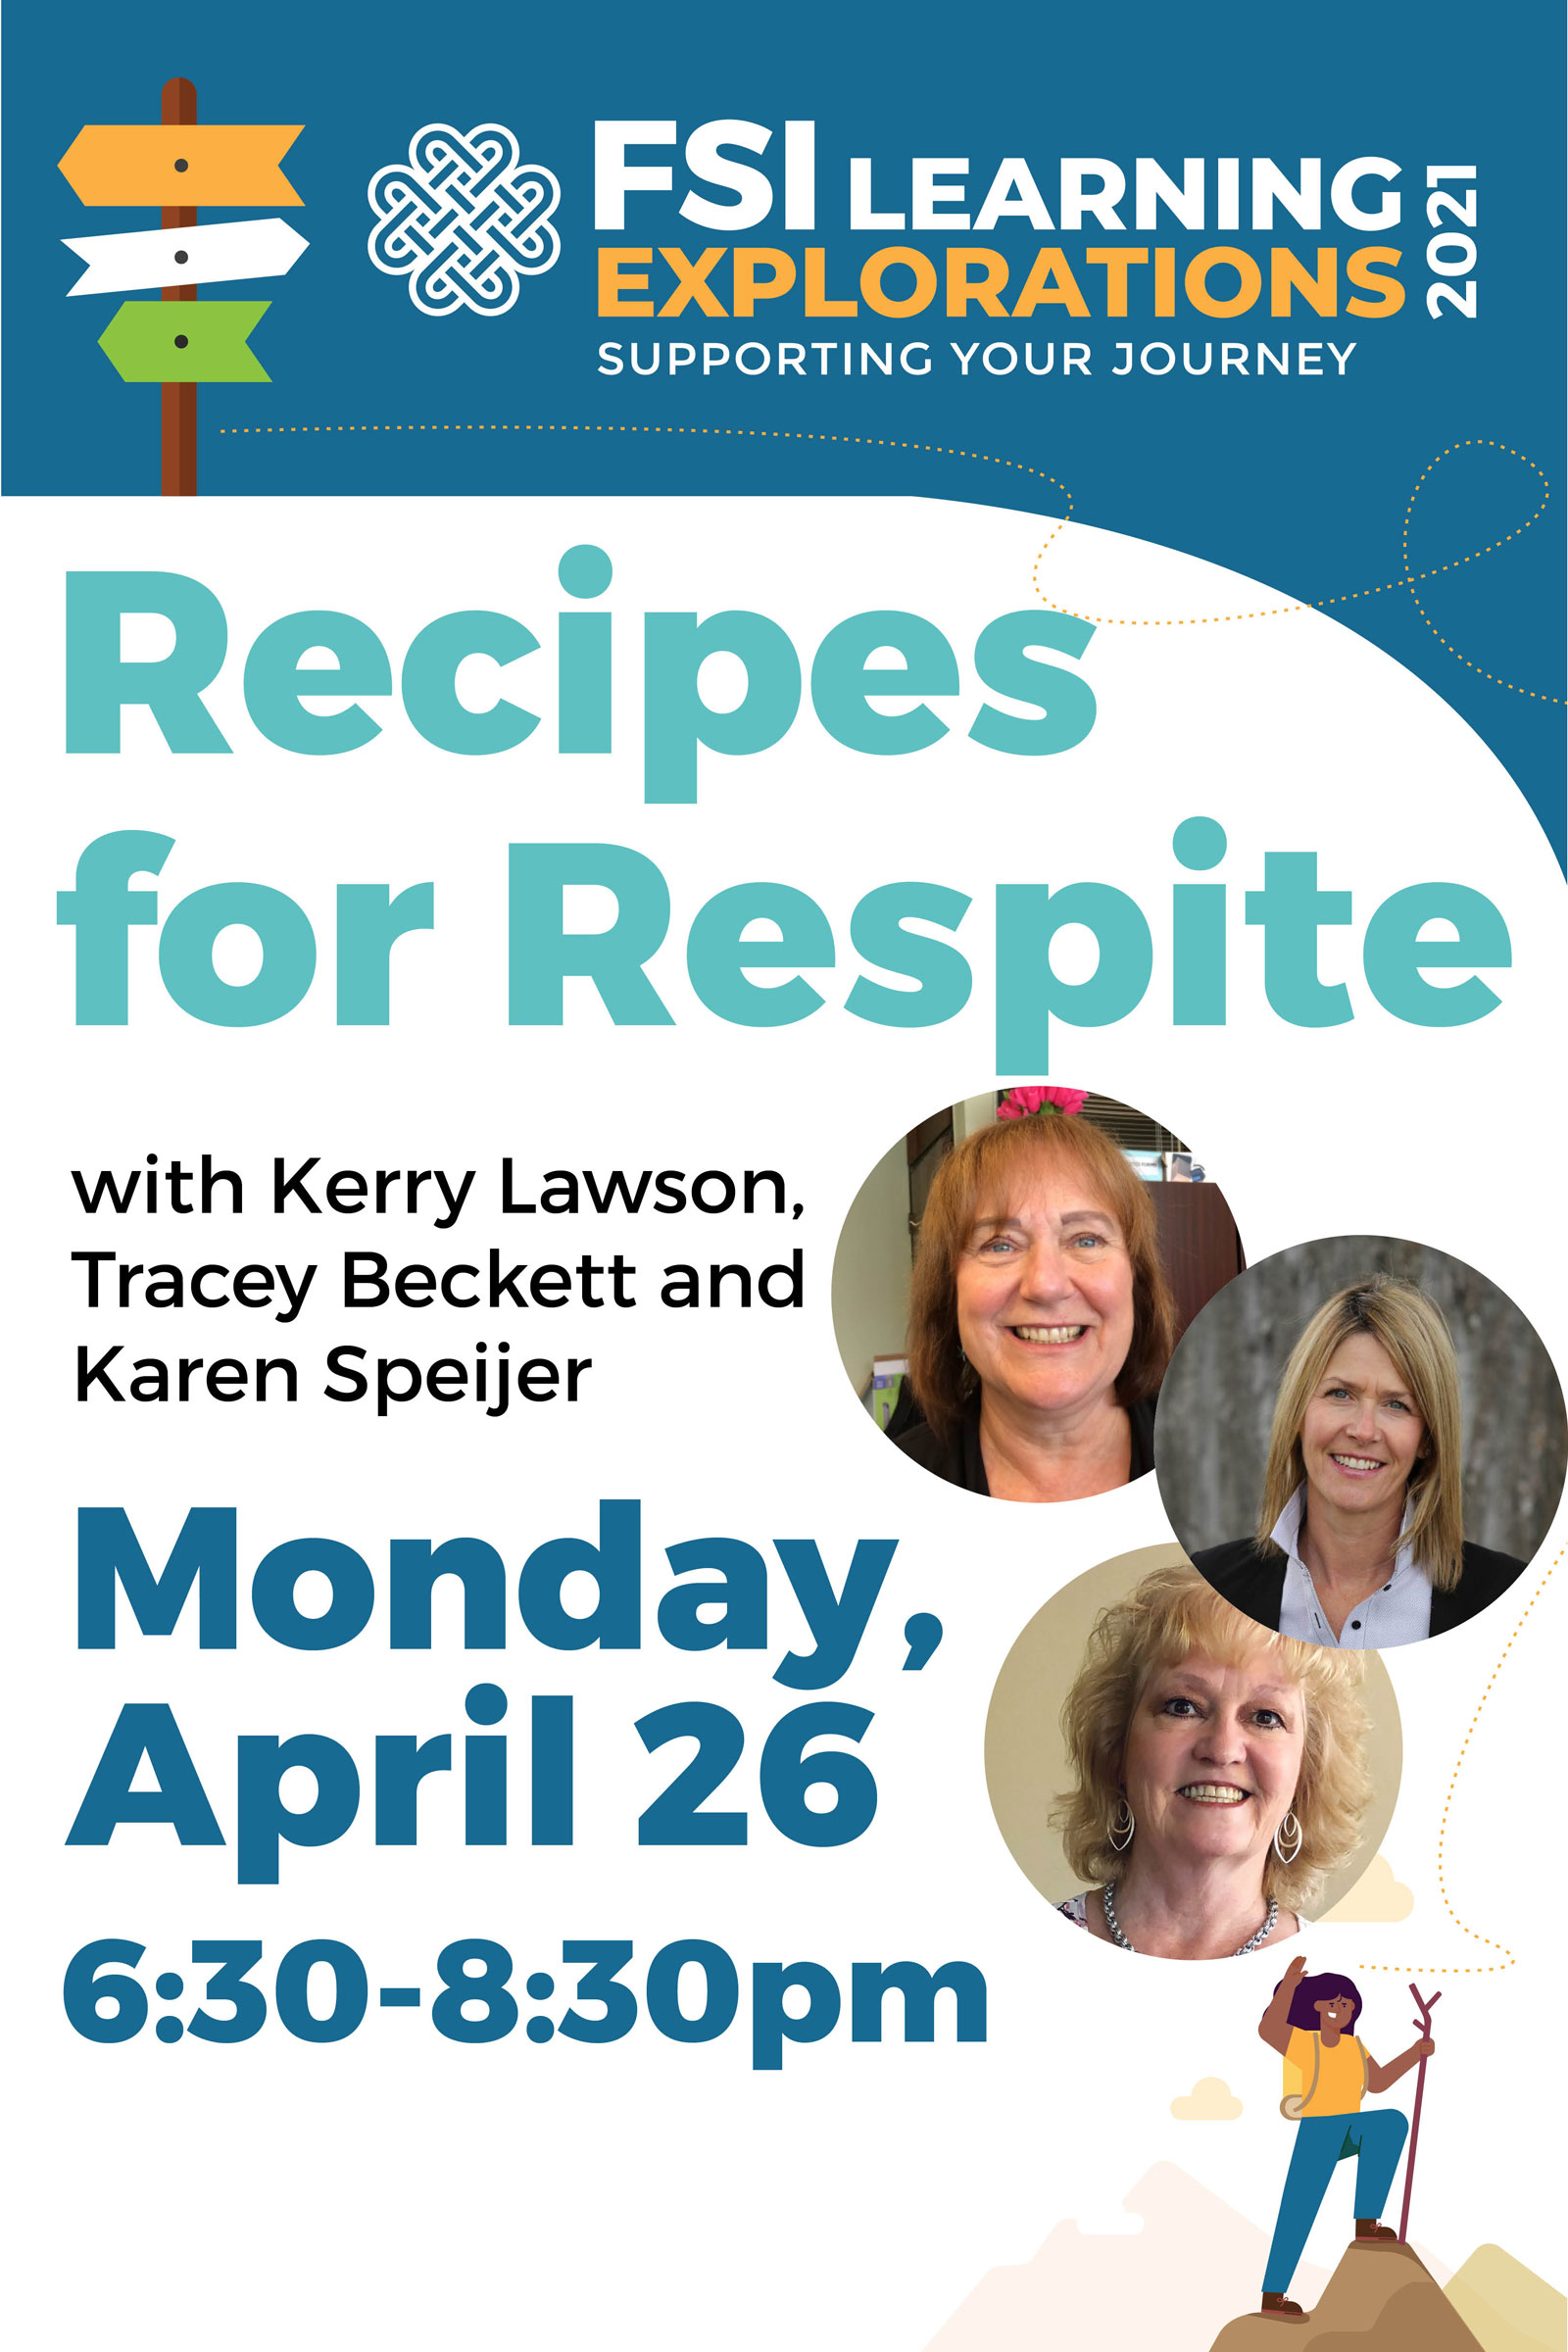 FSI Learning Explorations - Recipes for Respite (PM workshop)